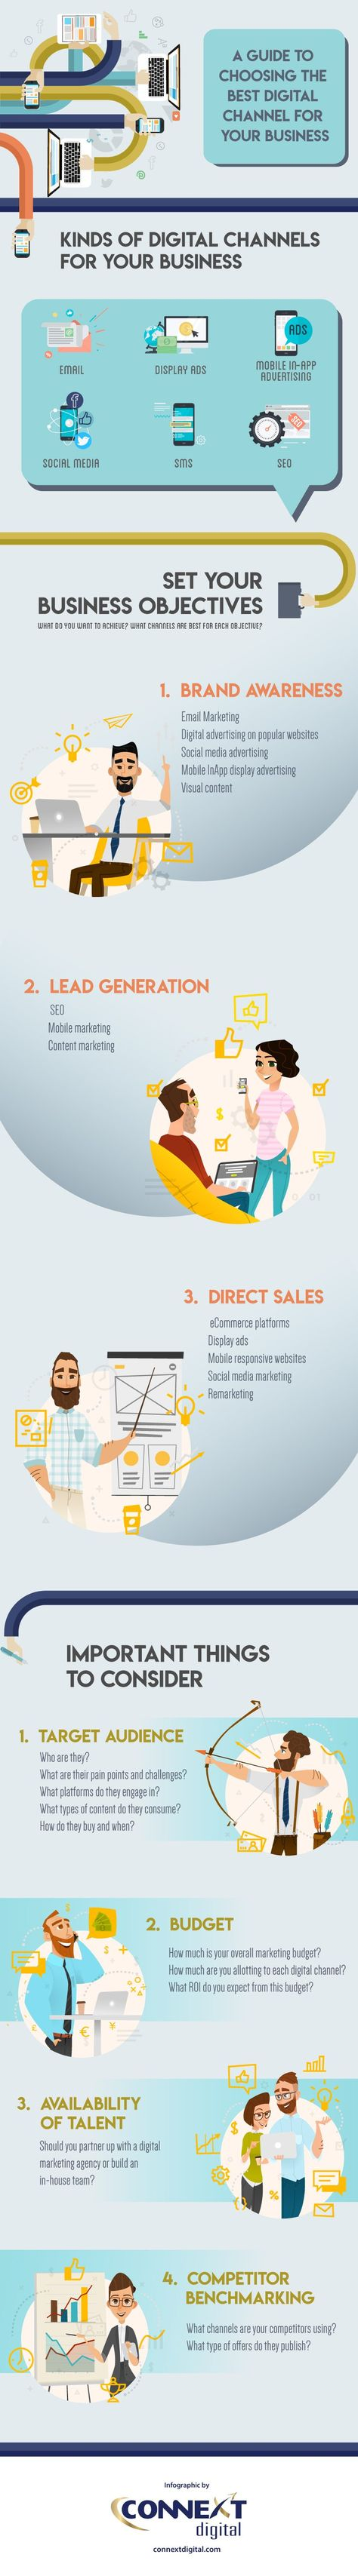 How to Choose the Best Digital Marketing Channel for Your Business [Infographic]